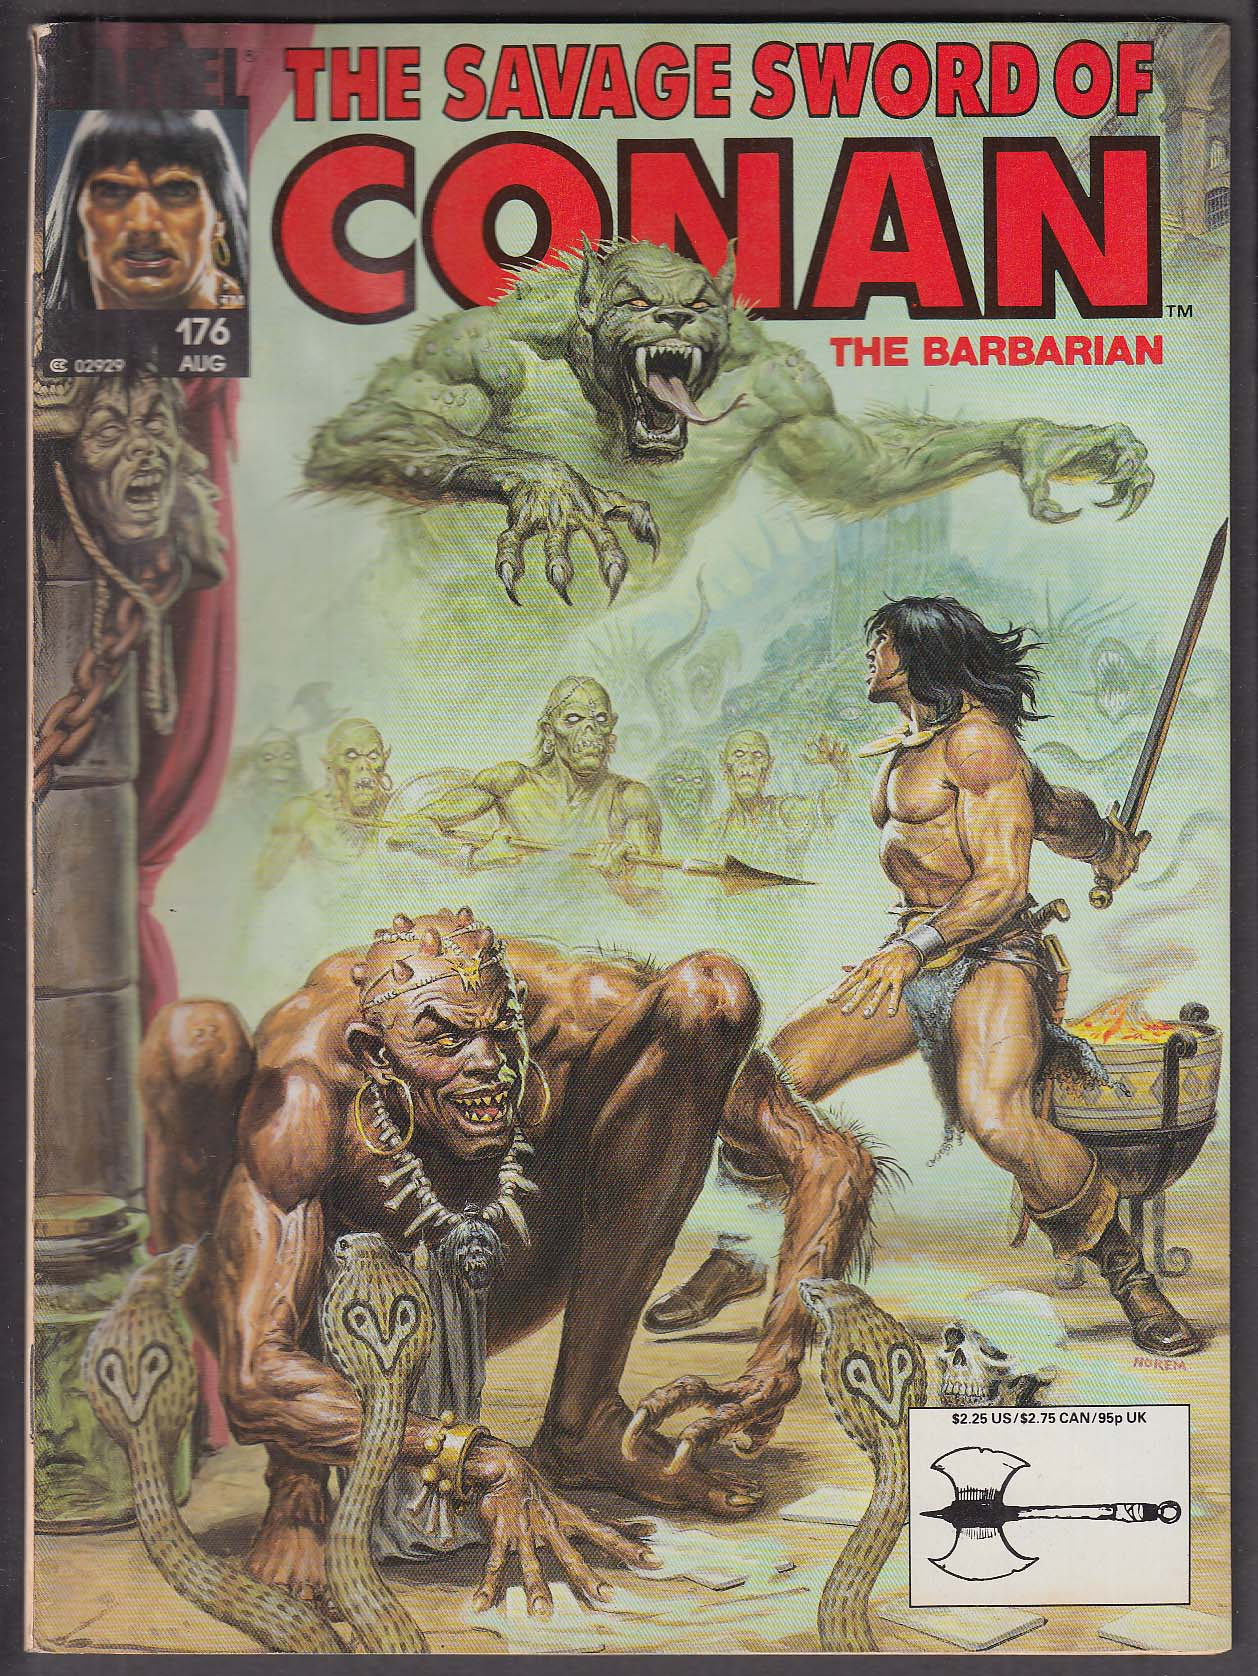 SAVAGE SWORD of CONAN the BARBARIAN #176 Marvel comic magazine 8 1990